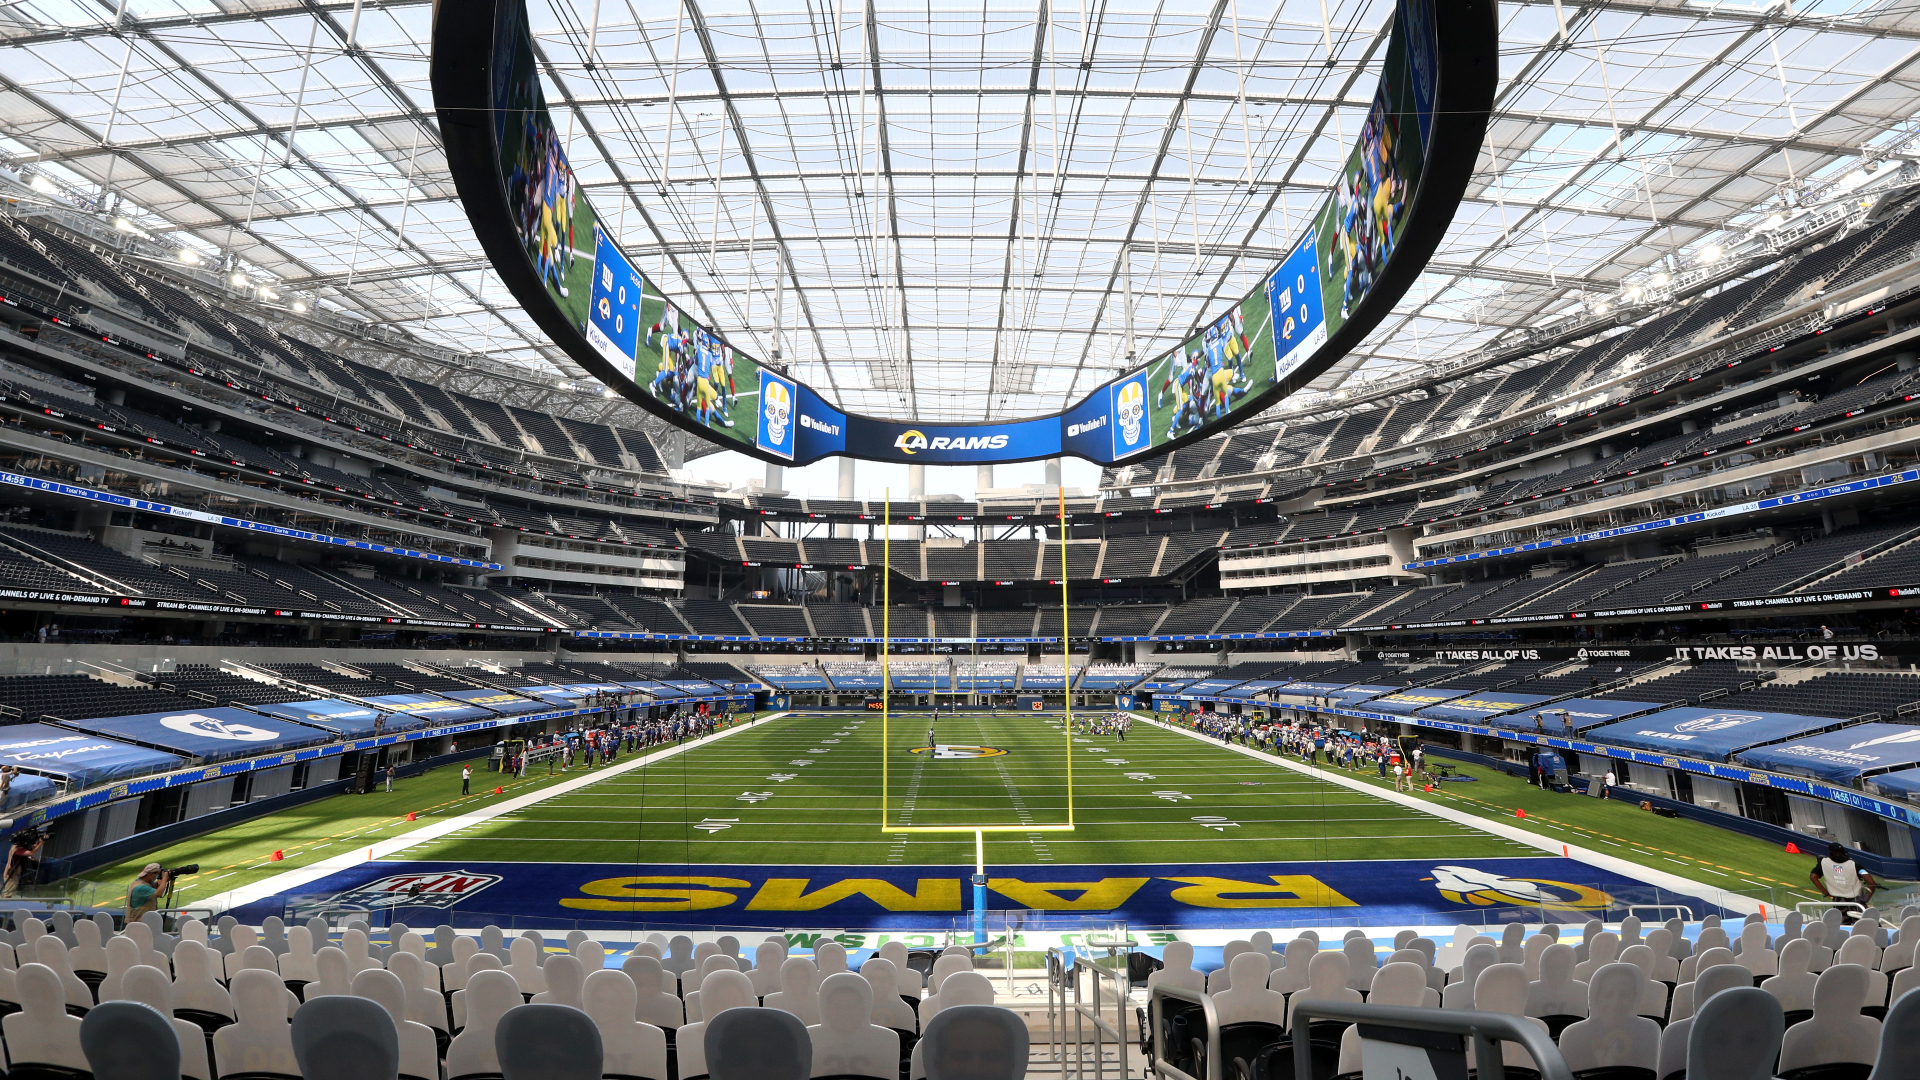 SoFi Stadium in Inglewood is seen during a game between the Los Angeles Rams and the New York Giants on Oct. 4, 2020. (Maxx Wolfson / Getty Images)